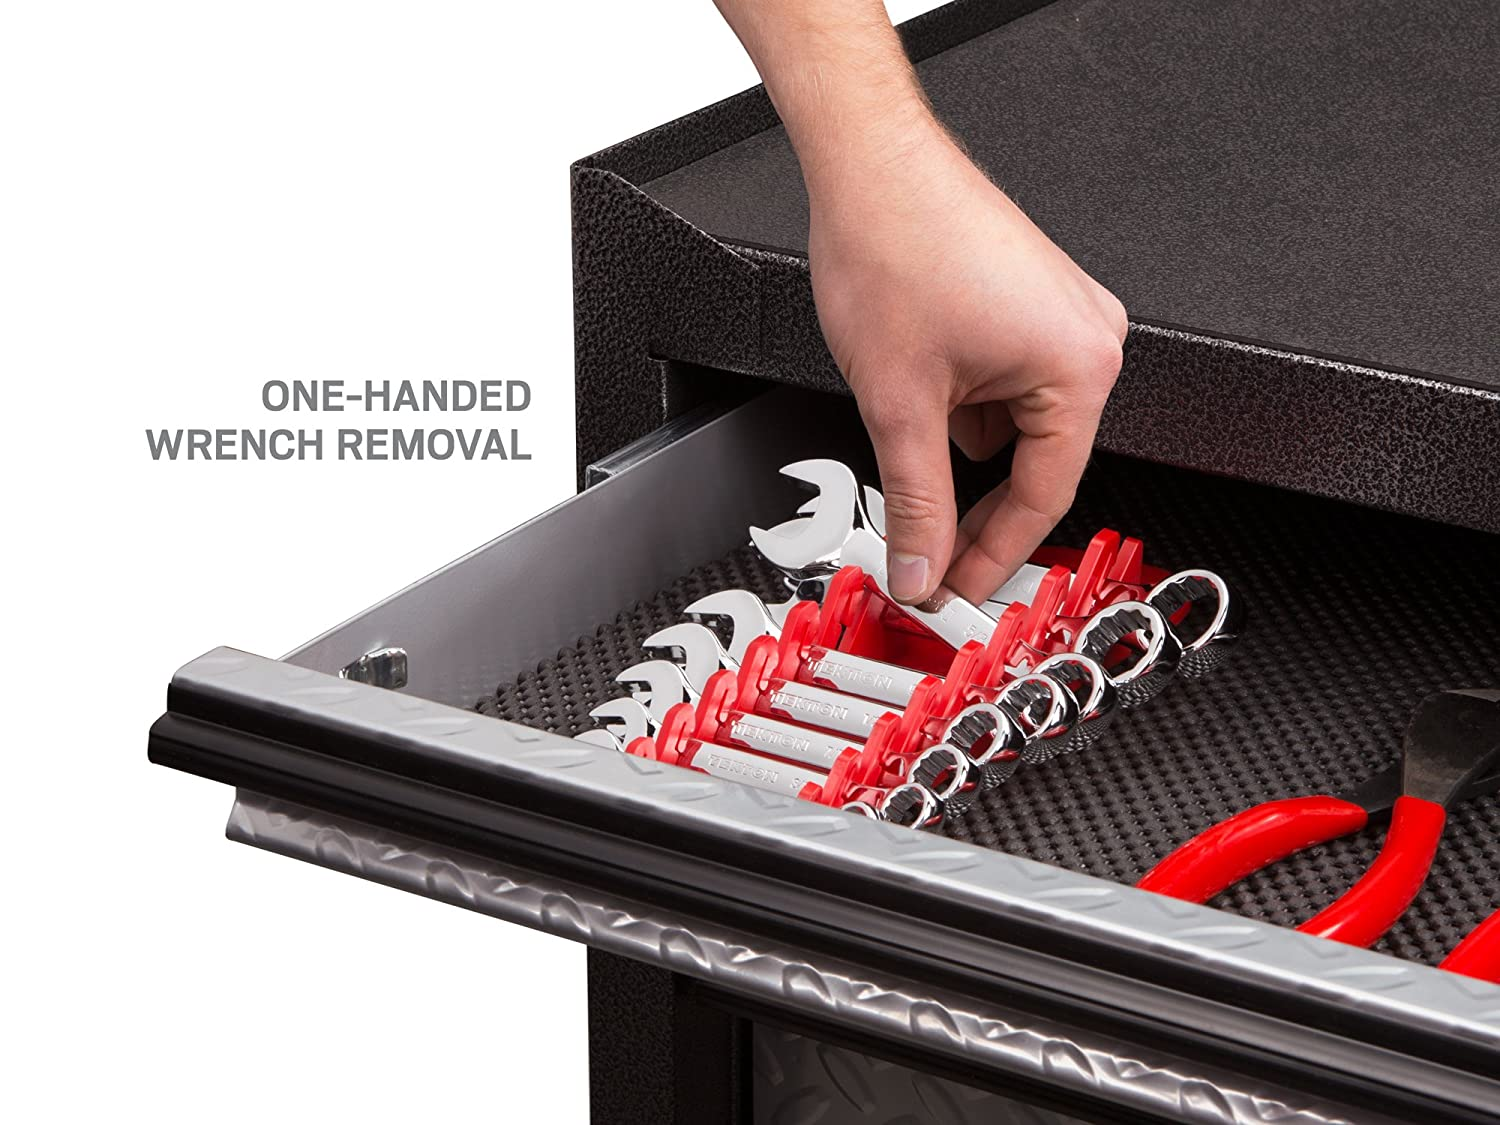 TEKTON ORG21212 12-Tool Store and Go Stubby Wrench Keeper Red